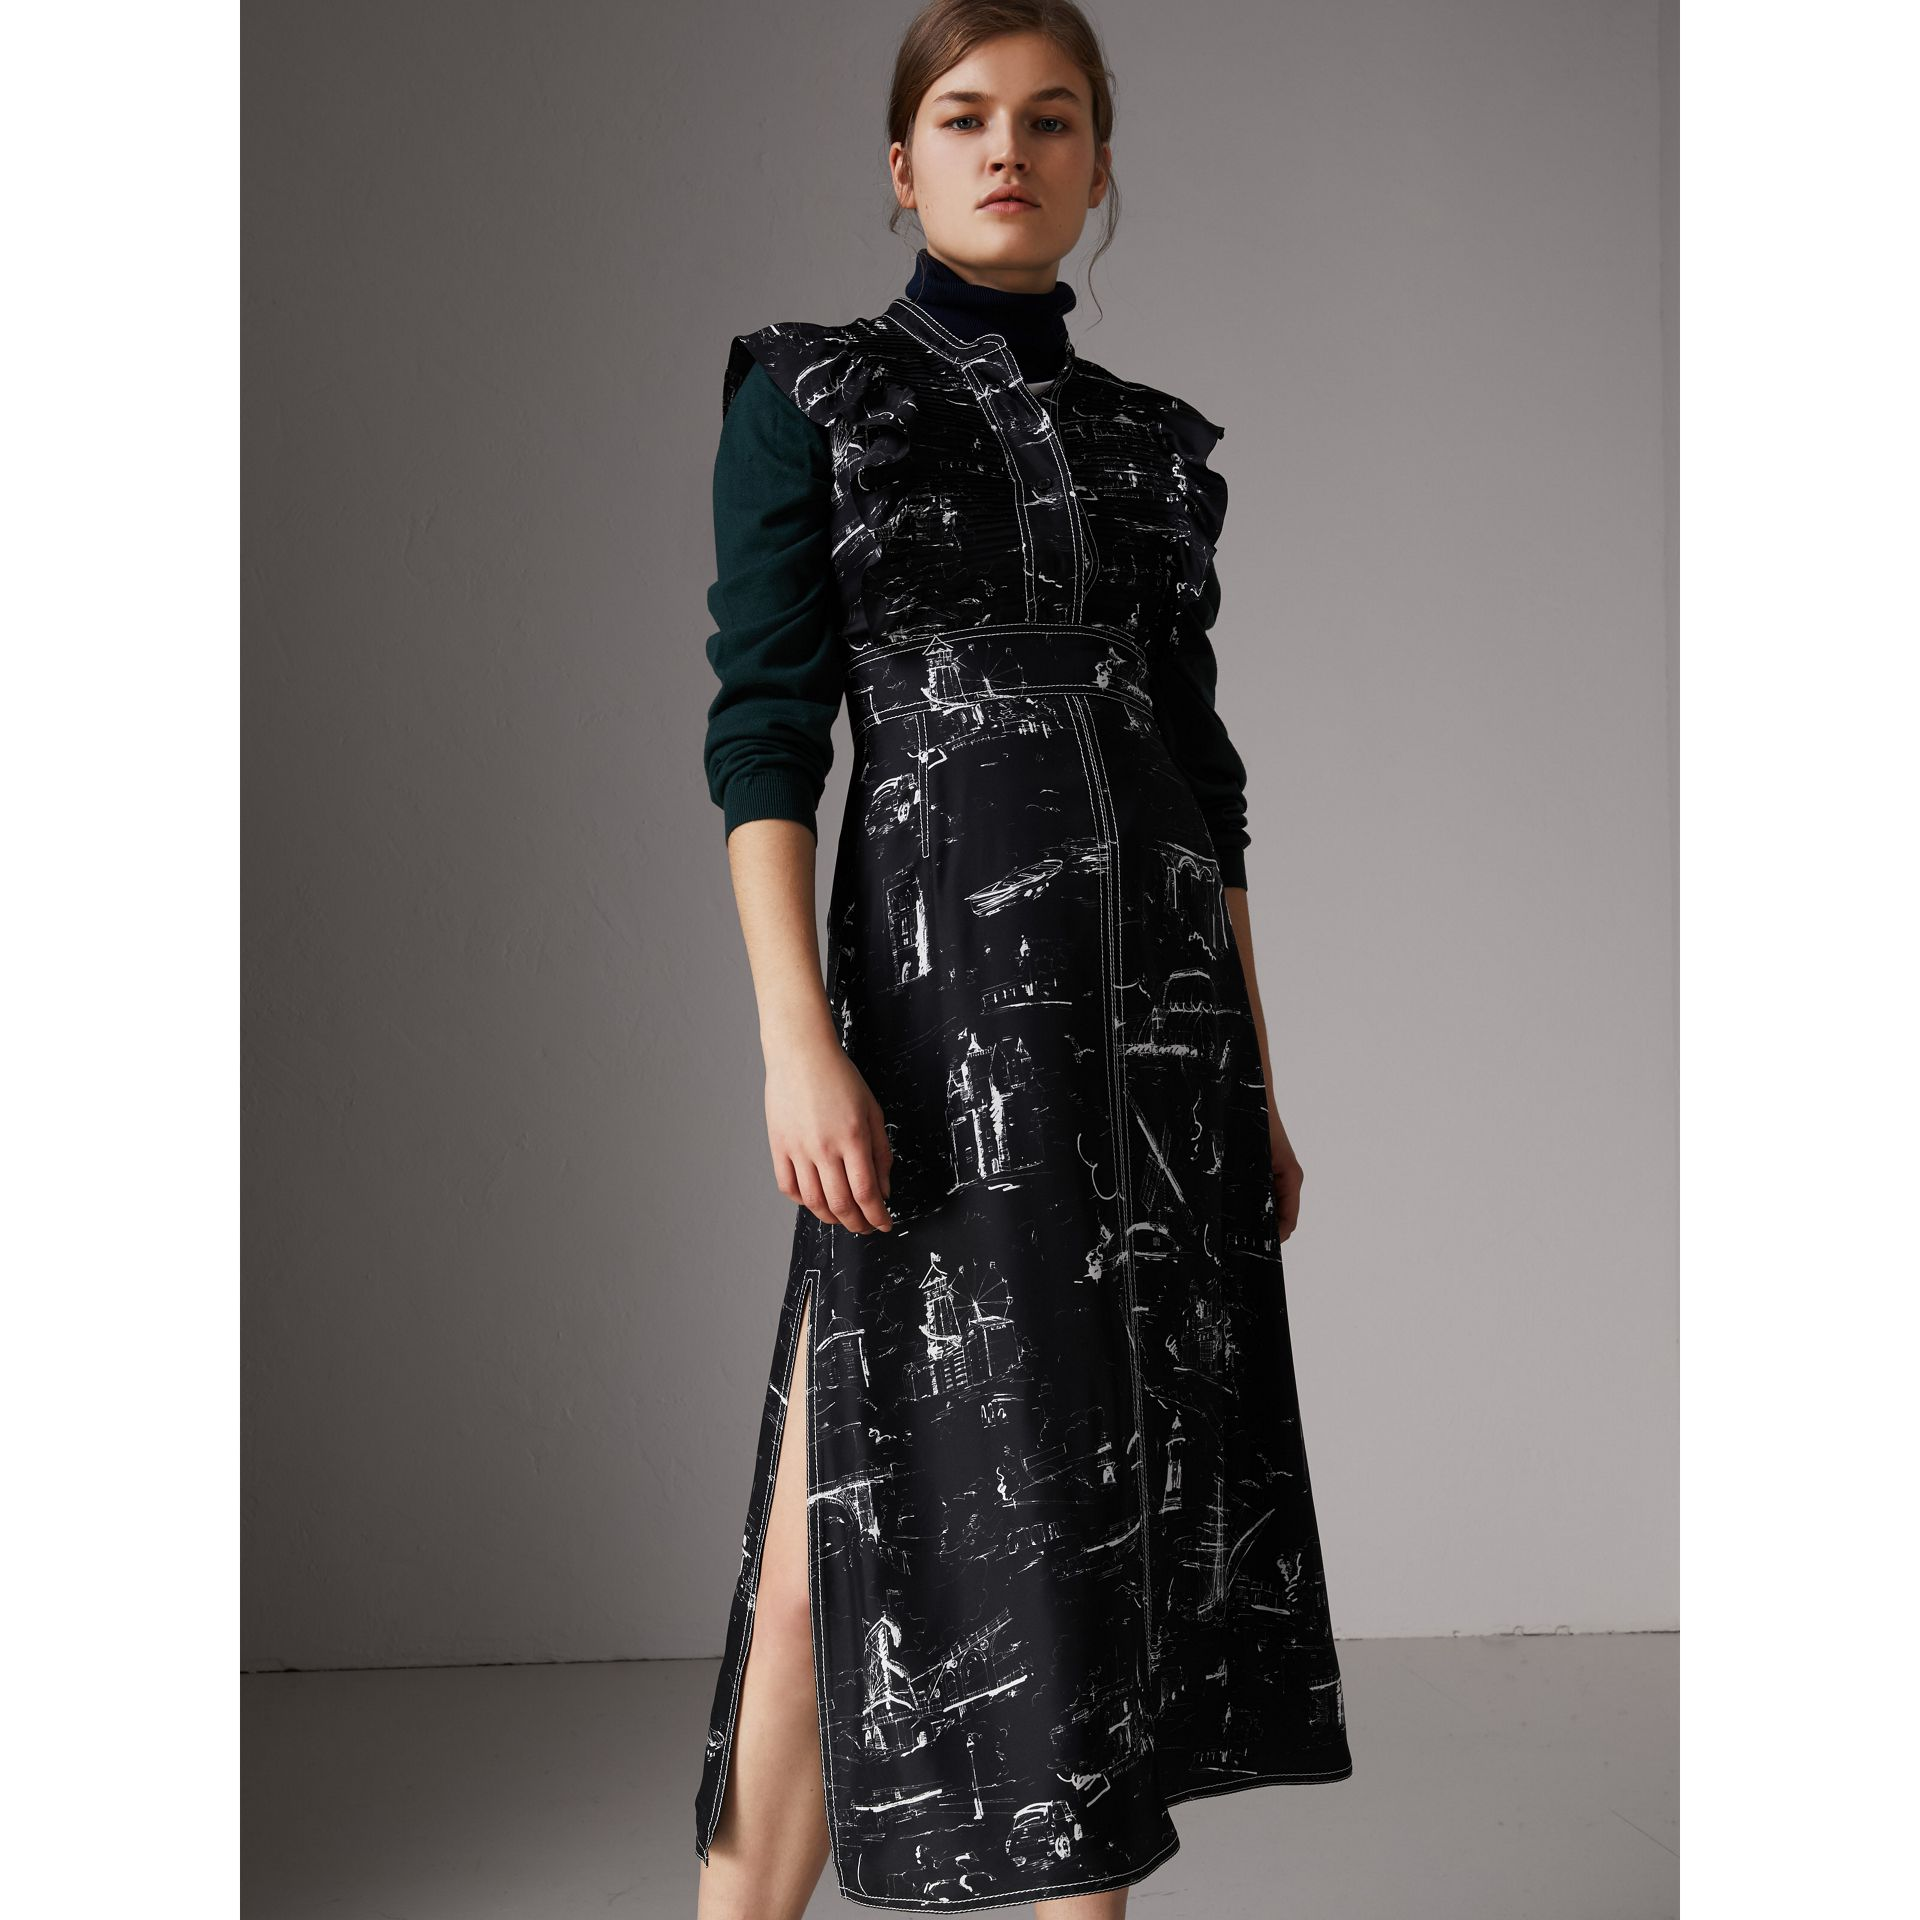 Ruffle Detail Landmark Print Silk Dress in Black - Women | Burberry - gallery image 4